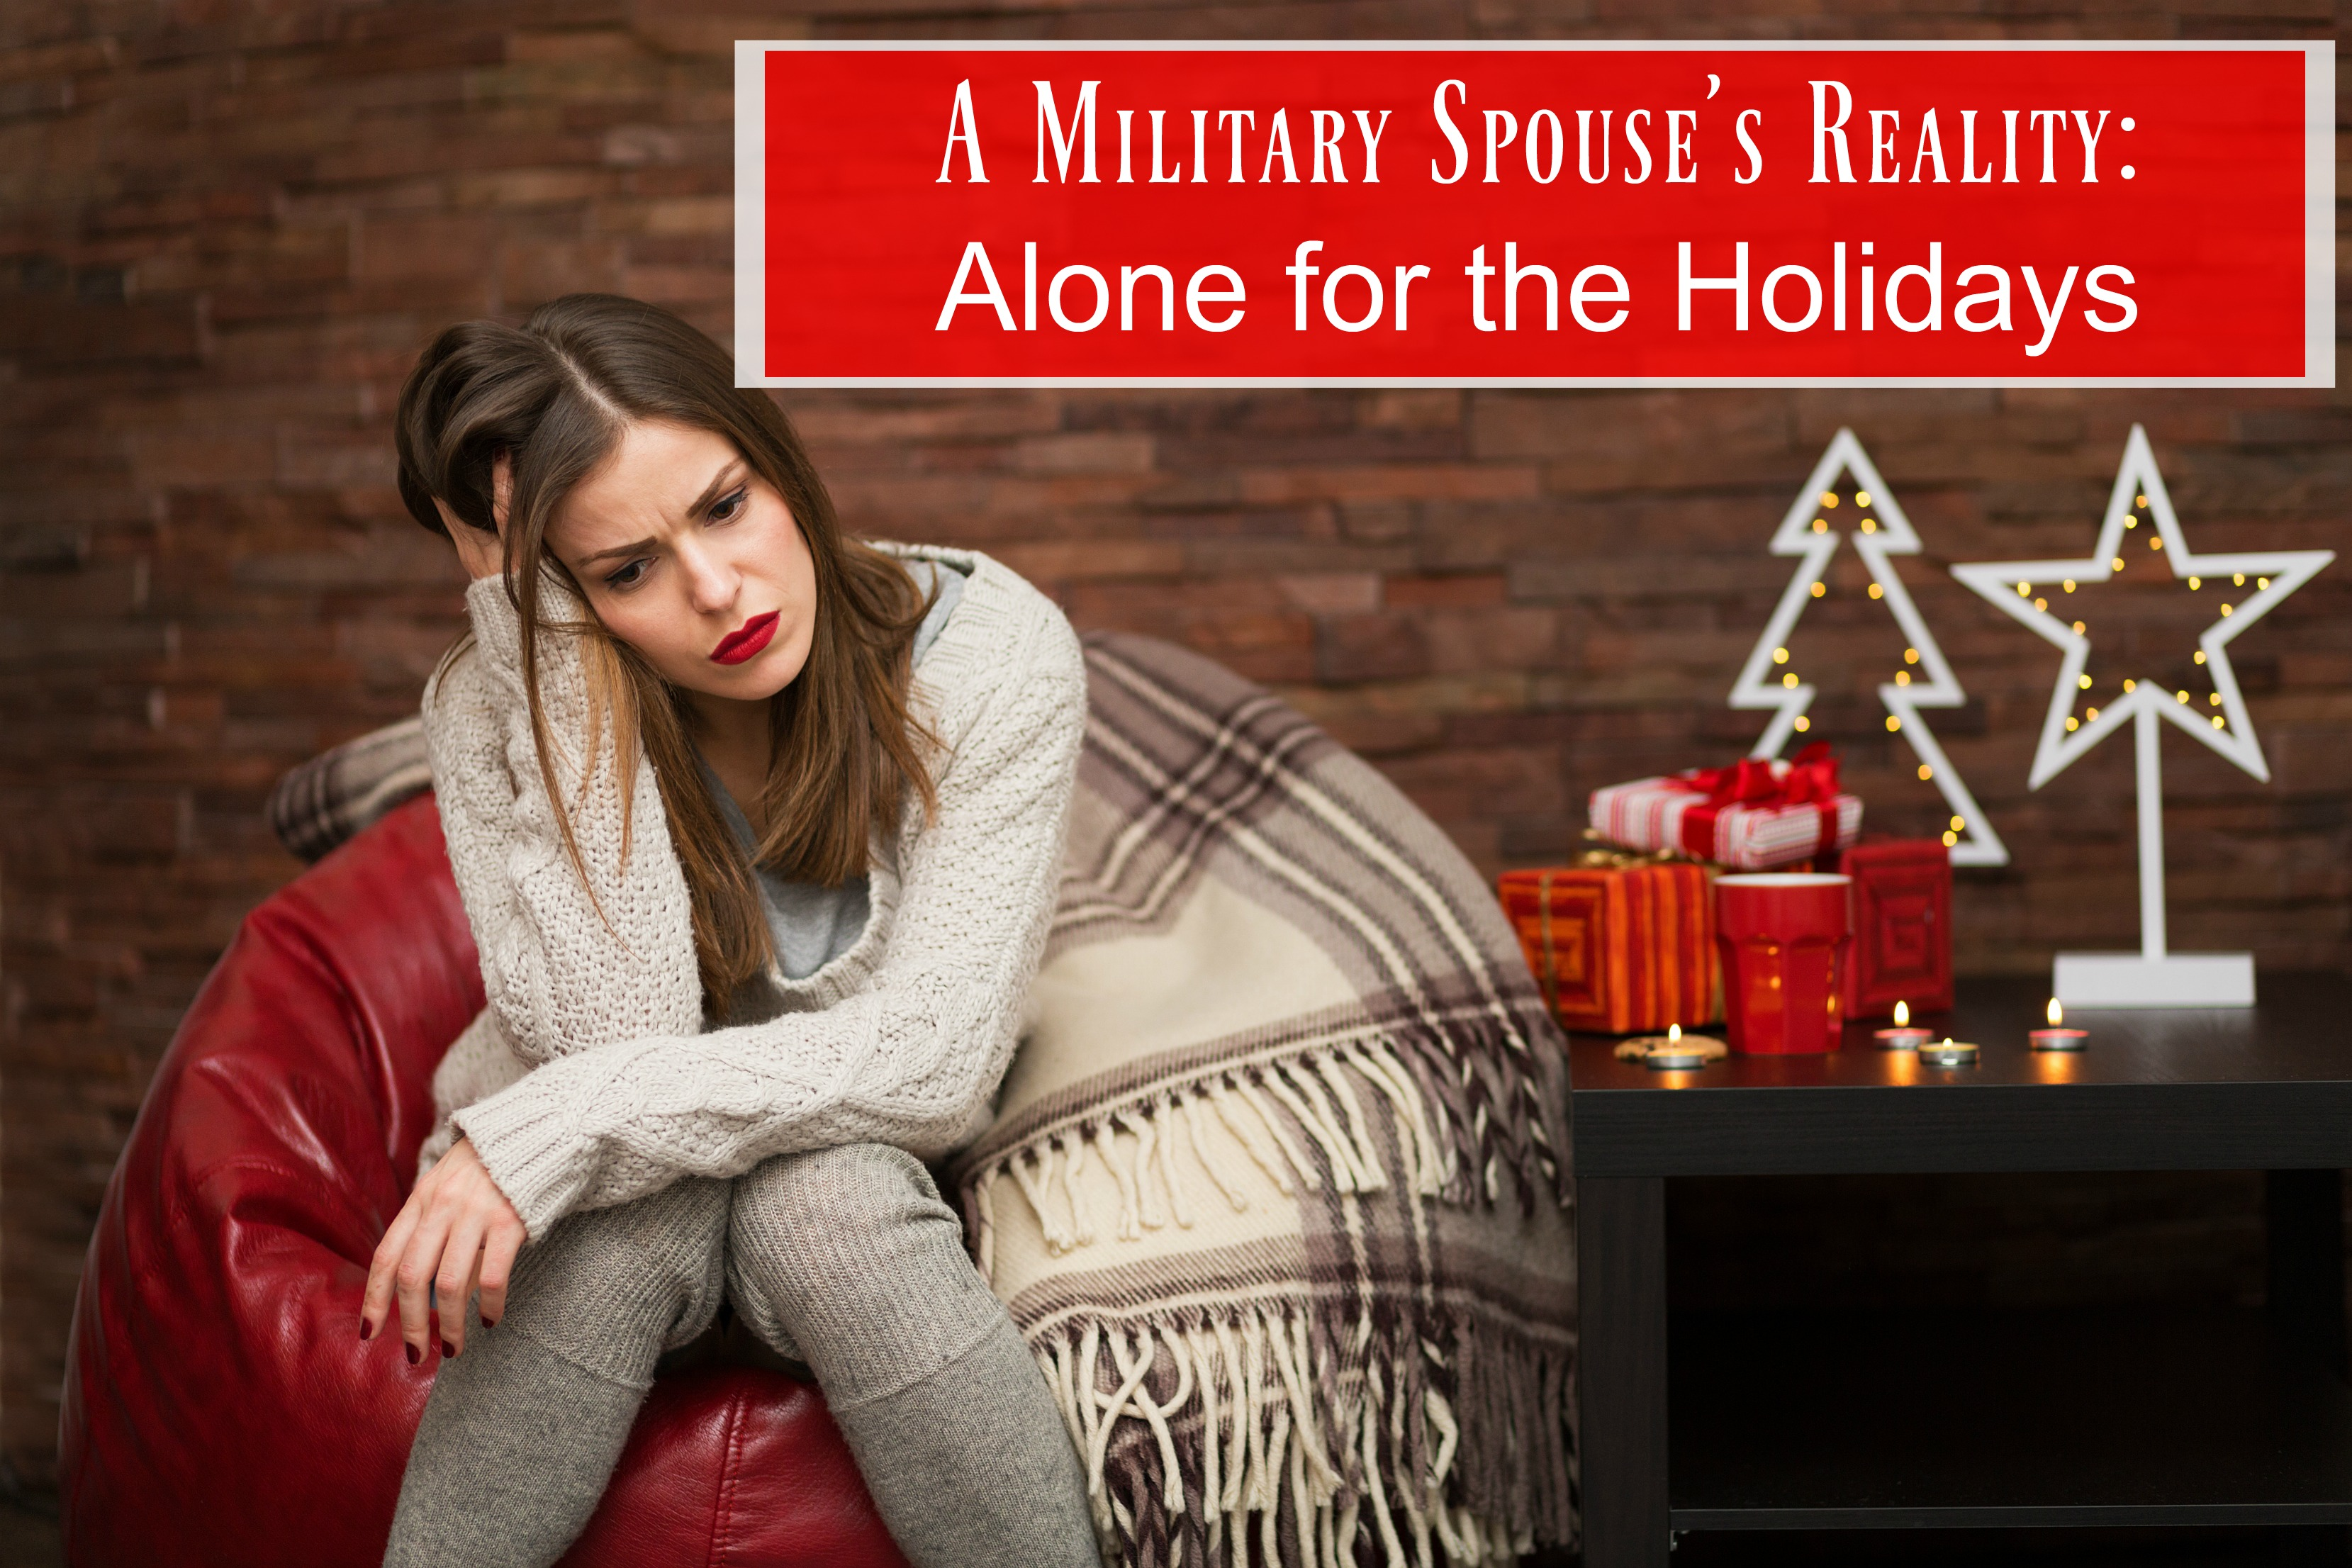 A Military Spouse's Reality: Alone for the Holidays